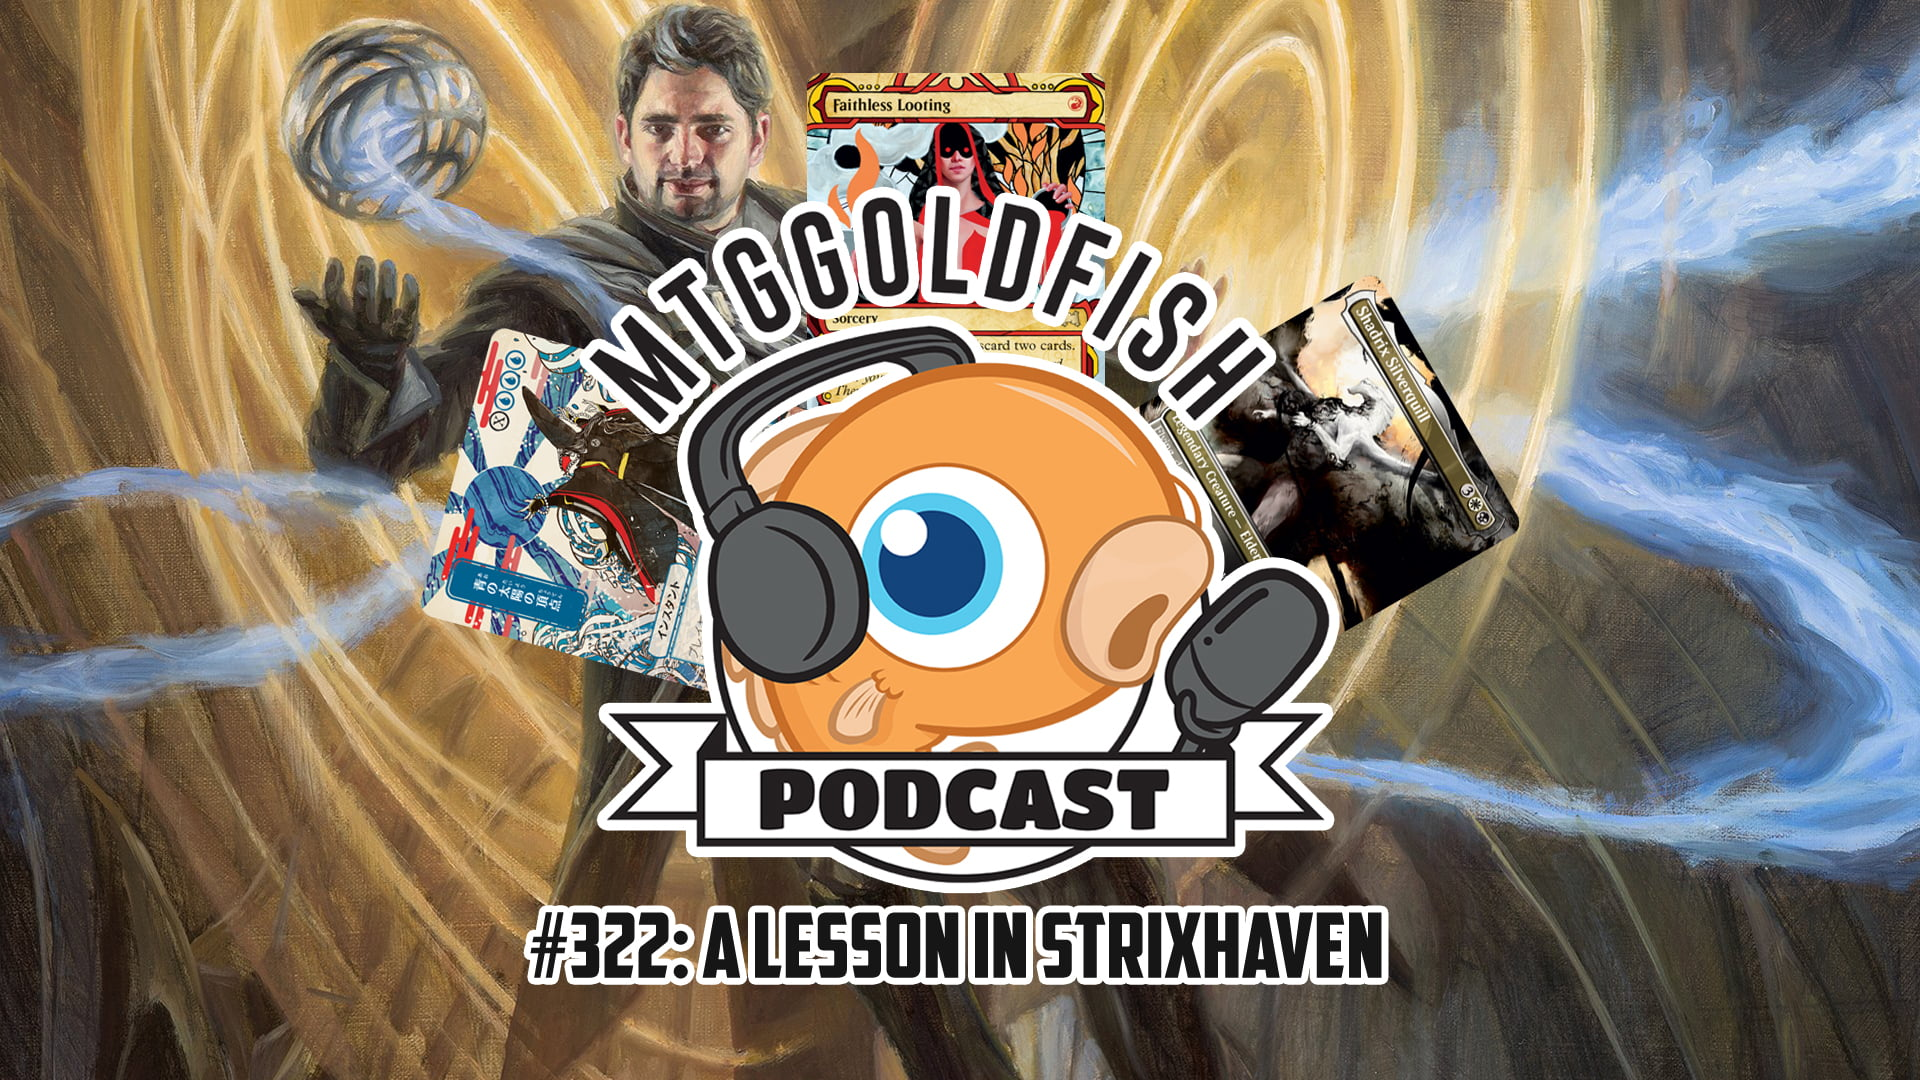 Image for Podcast 322: A Lesson in Strixhaven